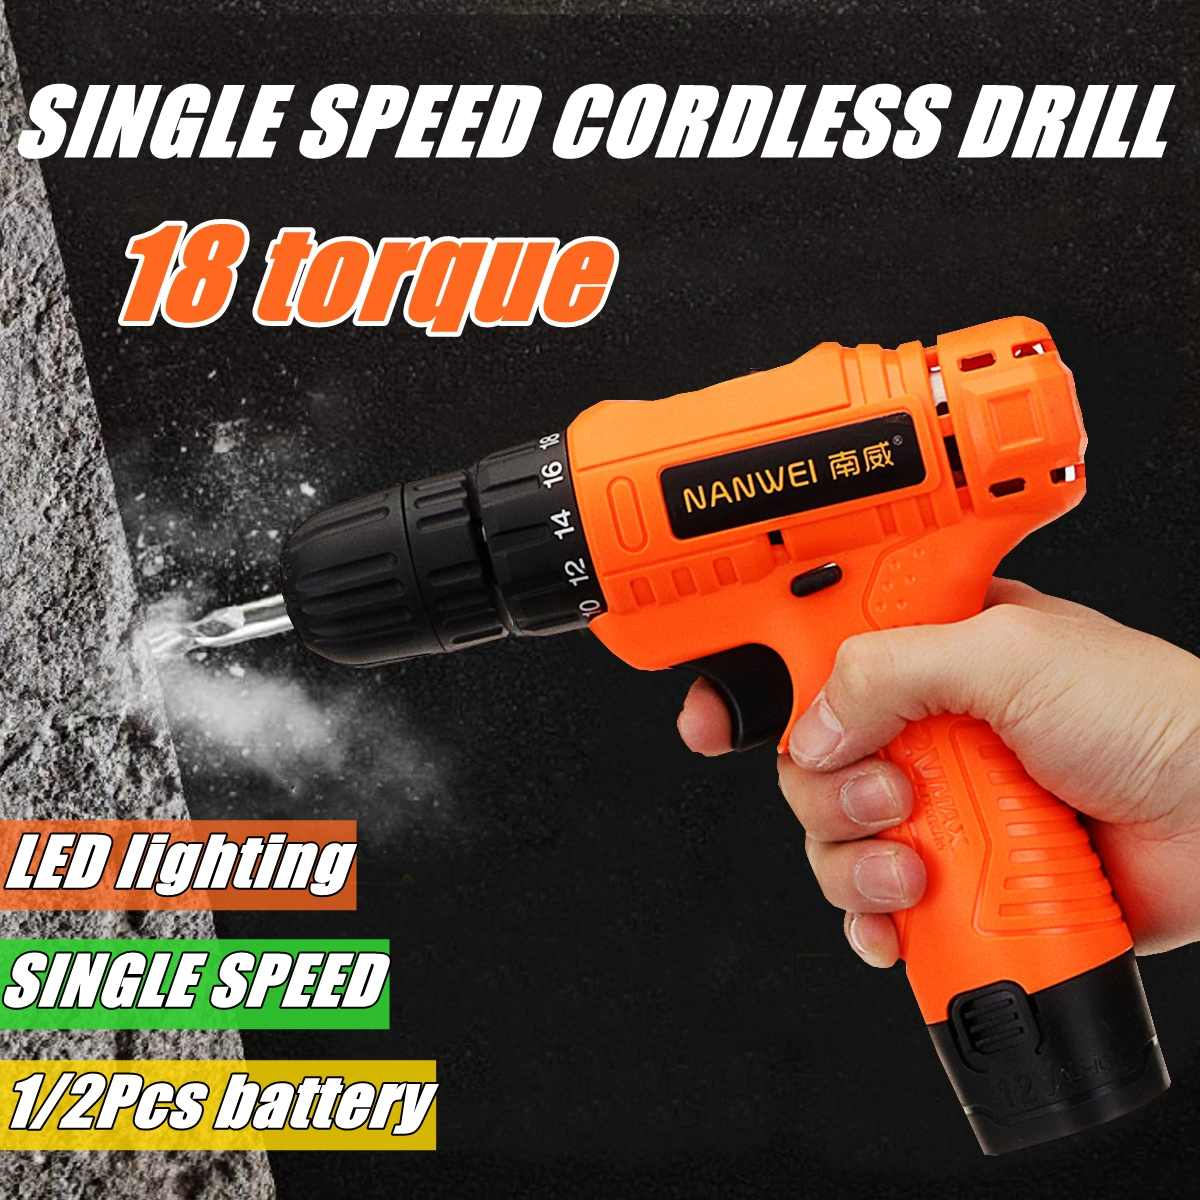 12V 18 Torque Electric Cordless Drill LED Lighting Rechargable 1/2 Li-Ion Battery Single Speed Power Drills12V 18 Torque Electric Cordless Drill LED Lighting Rechargable 1/2 Li-Ion Battery Single Speed Power Drills